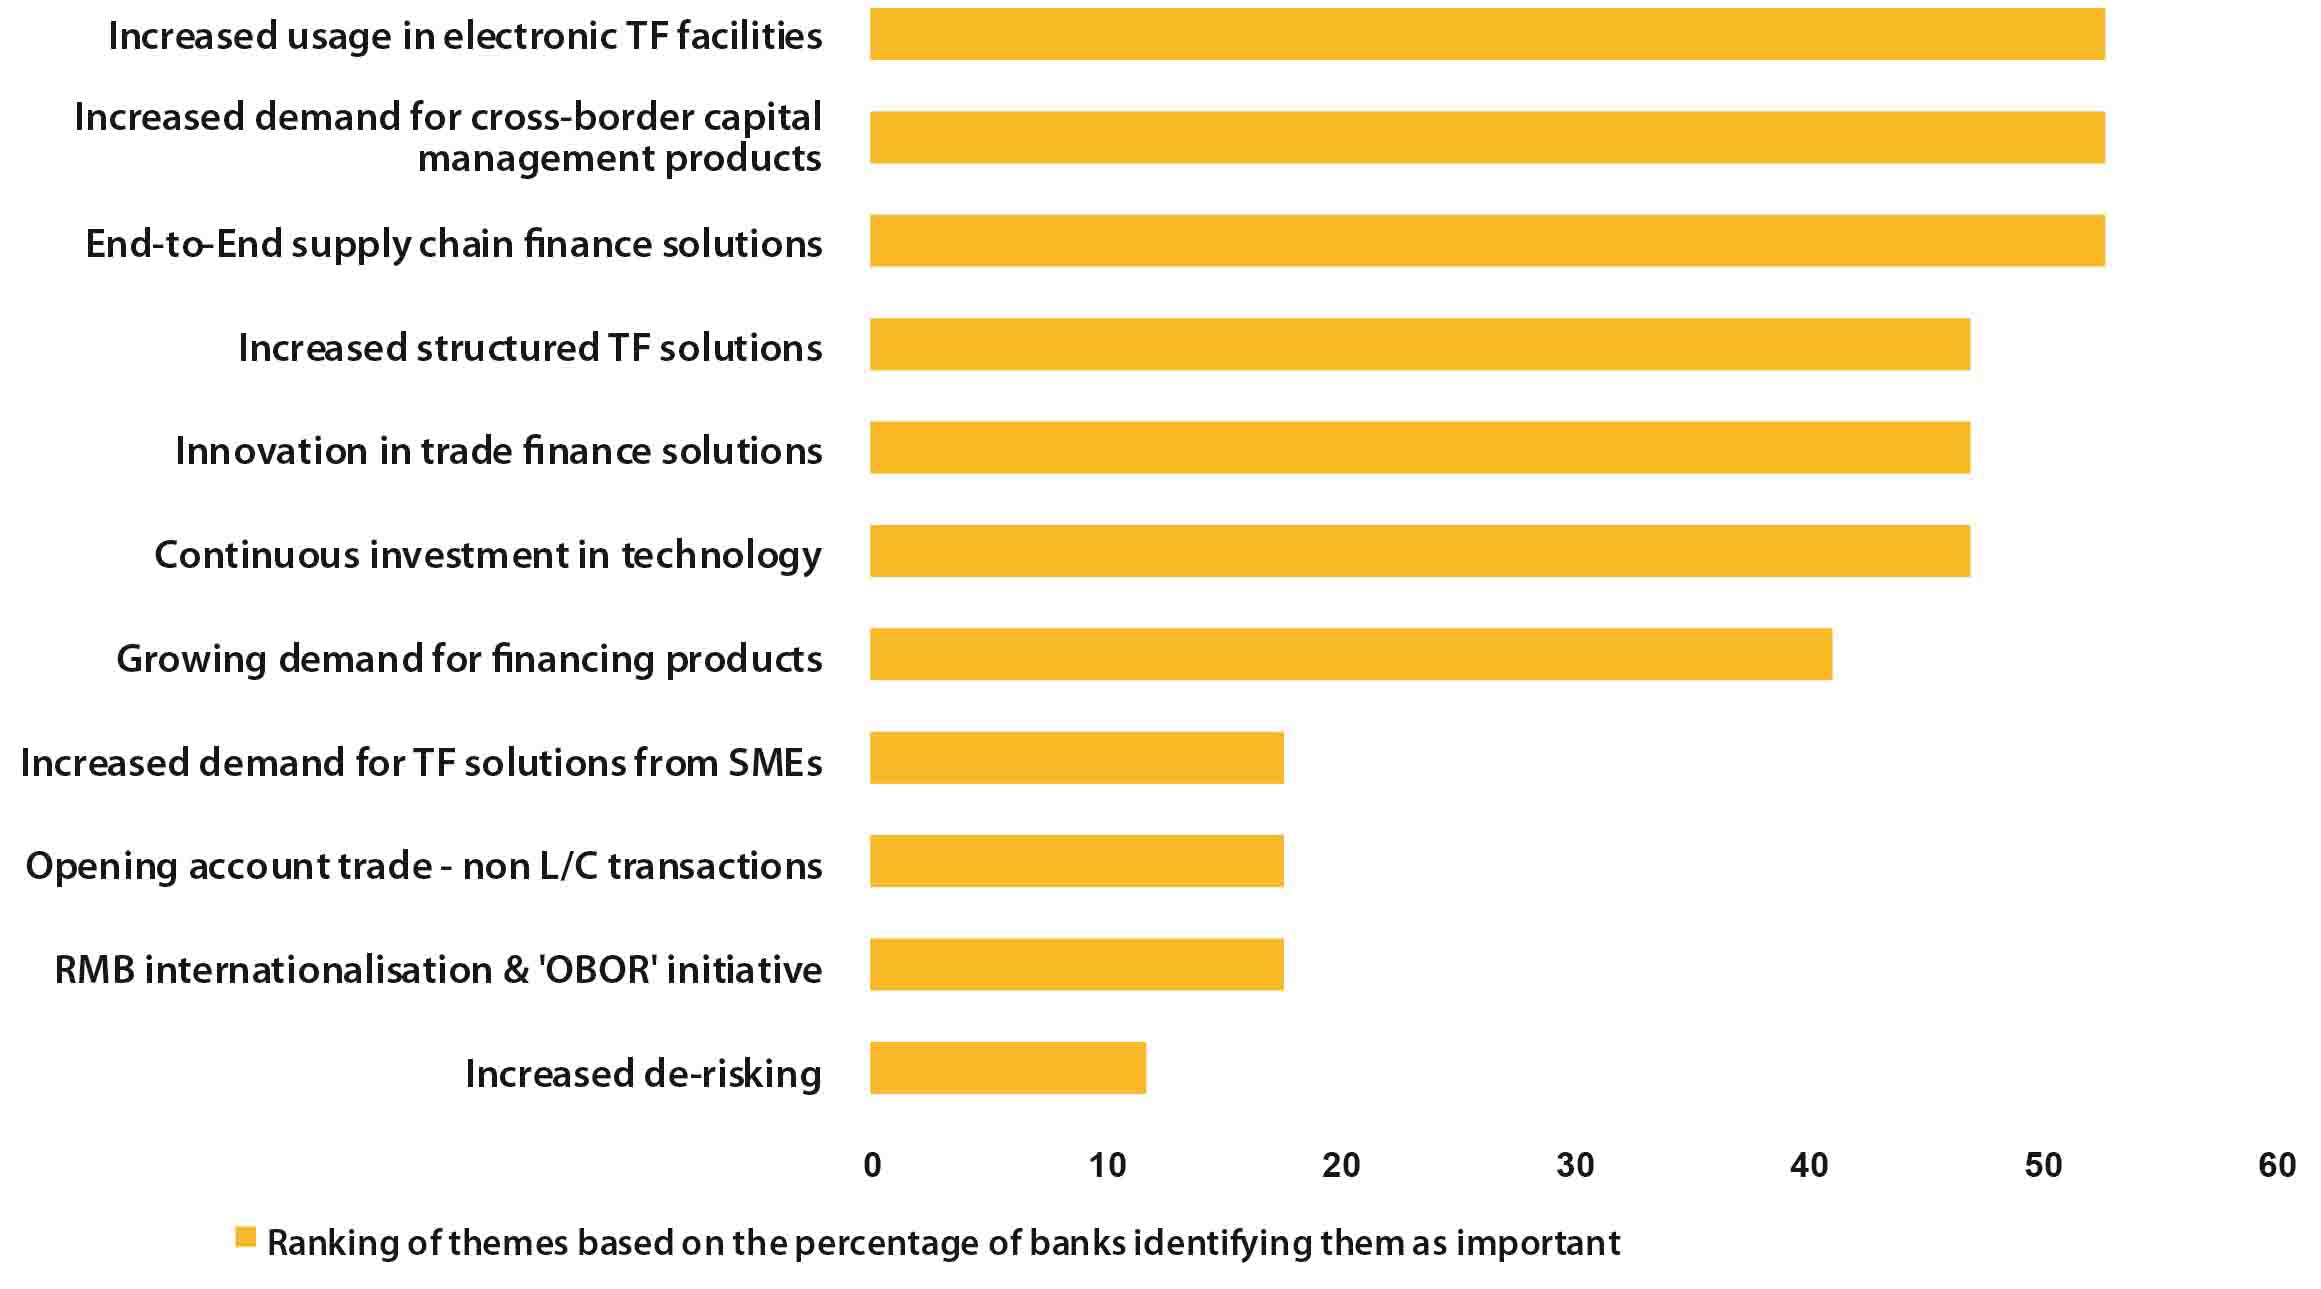 End-to-end and innovative supply chain finance dominates priority